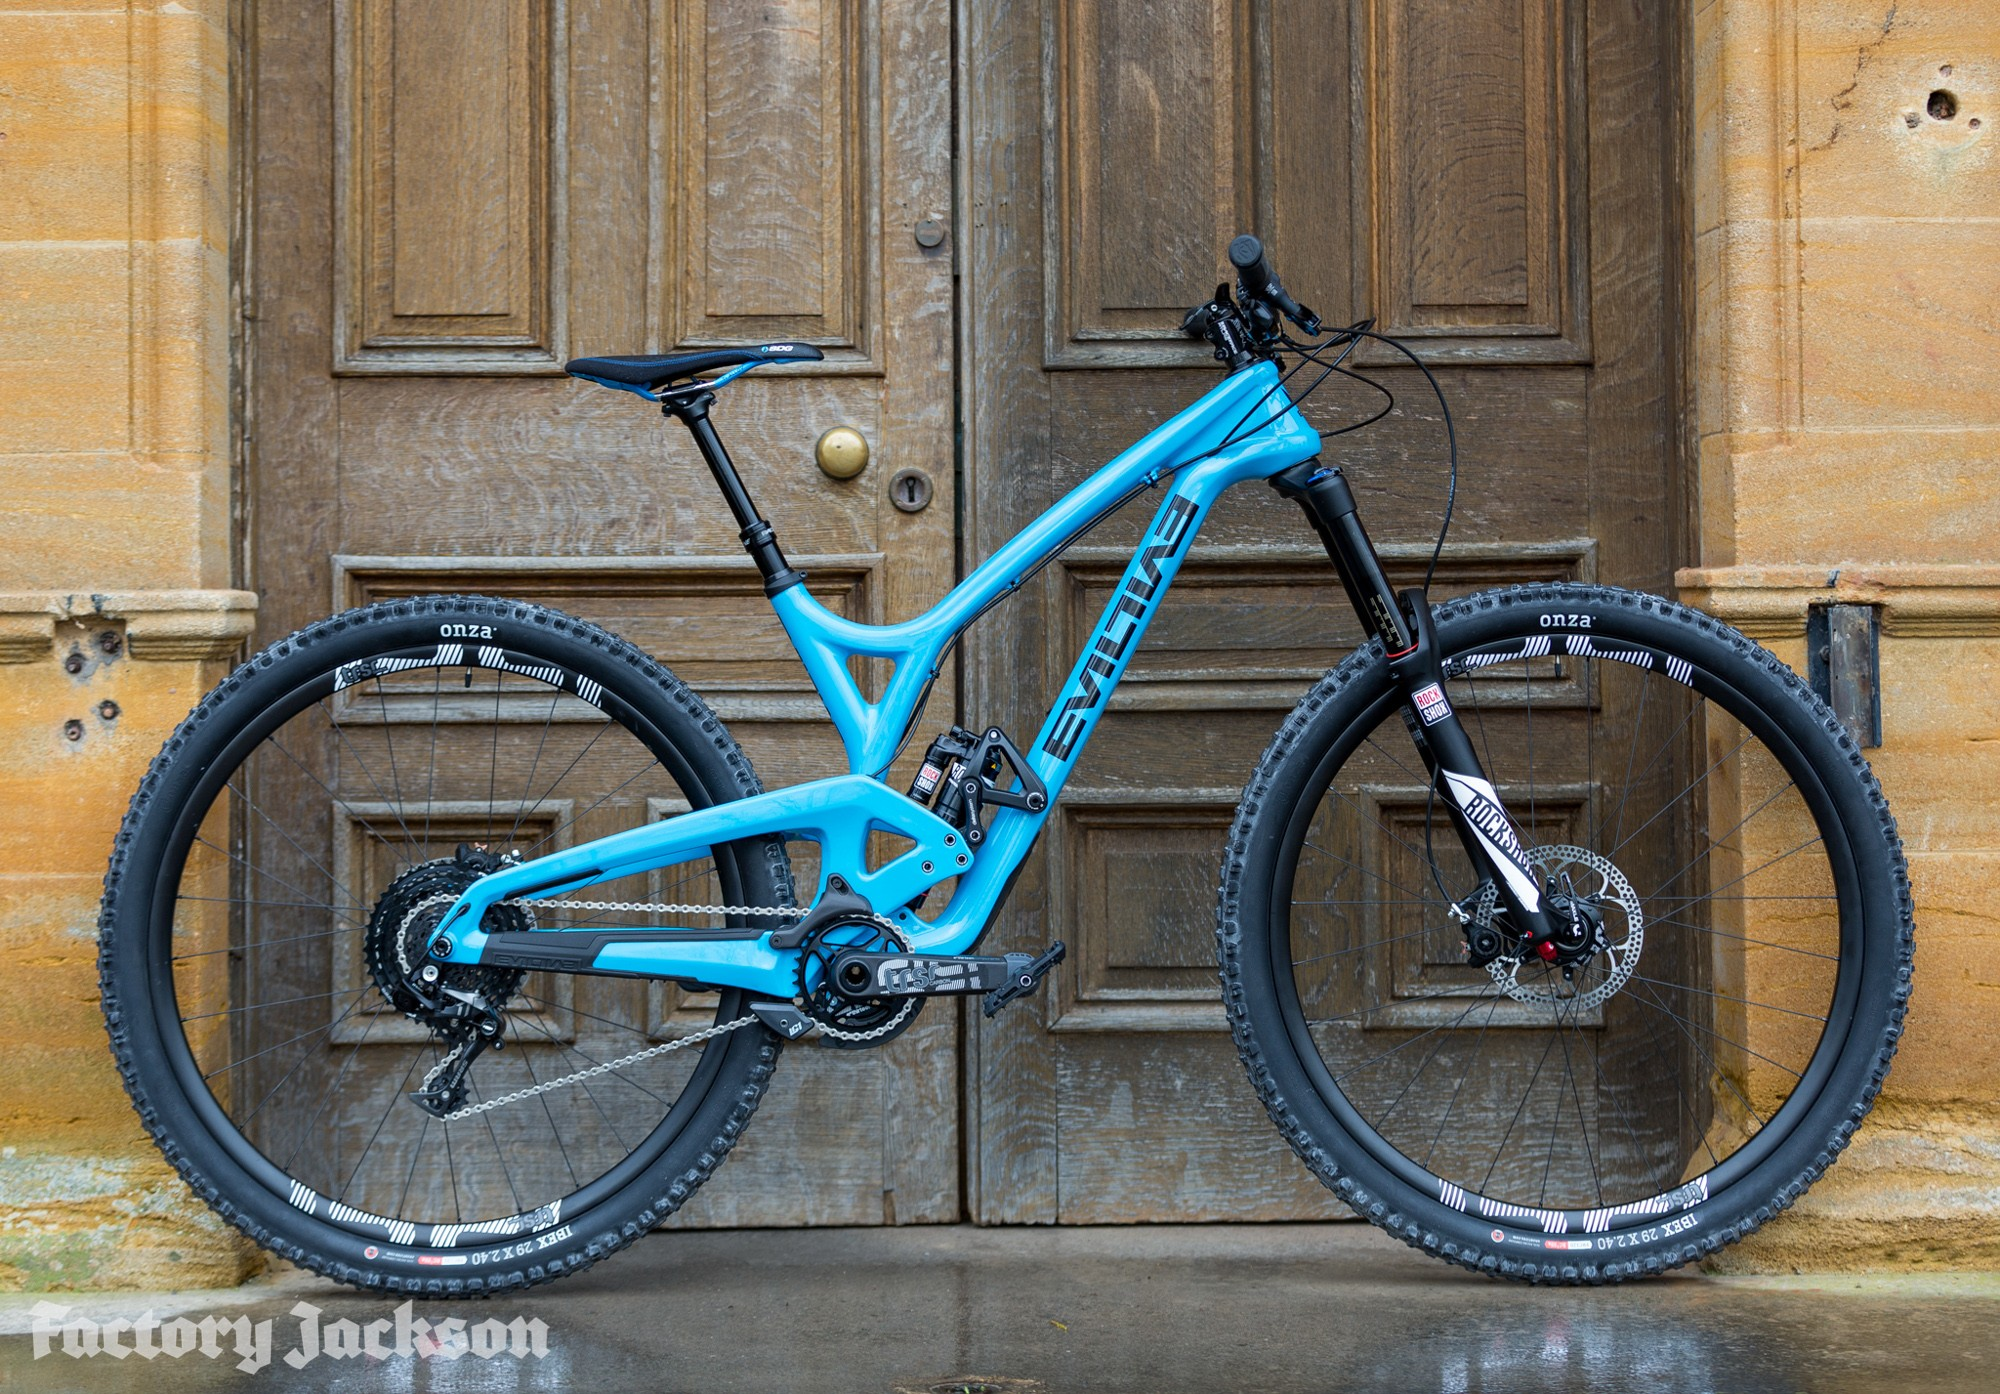 Evil Bikes The Wreckoning released! - Factory Jackson Factory Jackson